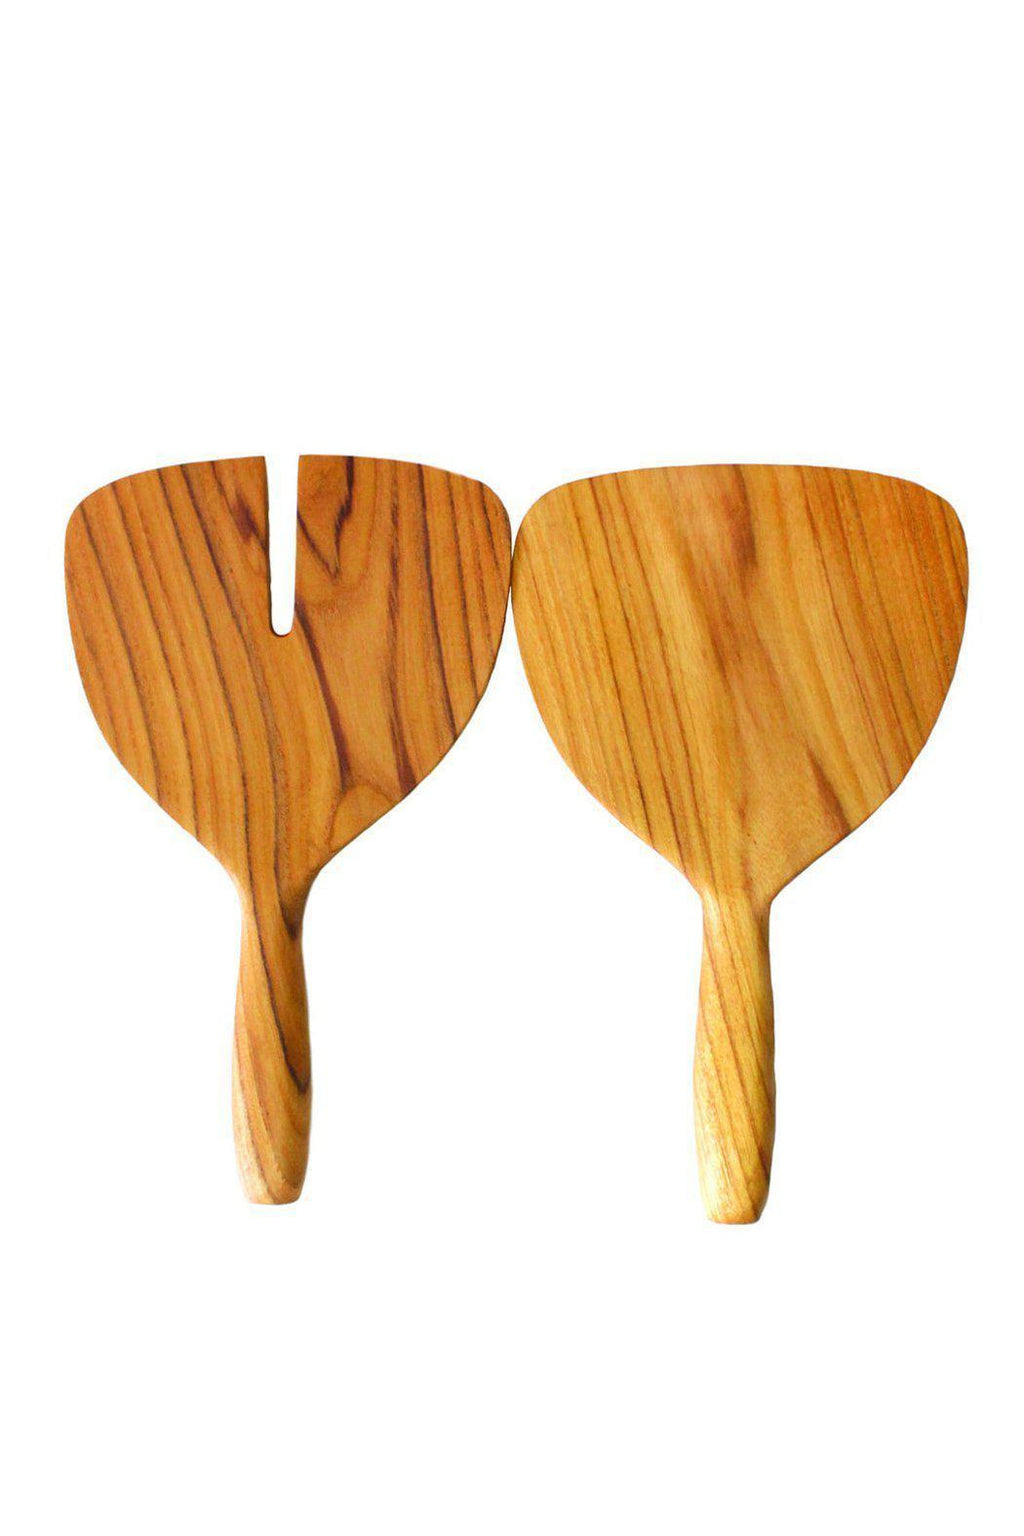 BeHome Teak Wide Serving Set